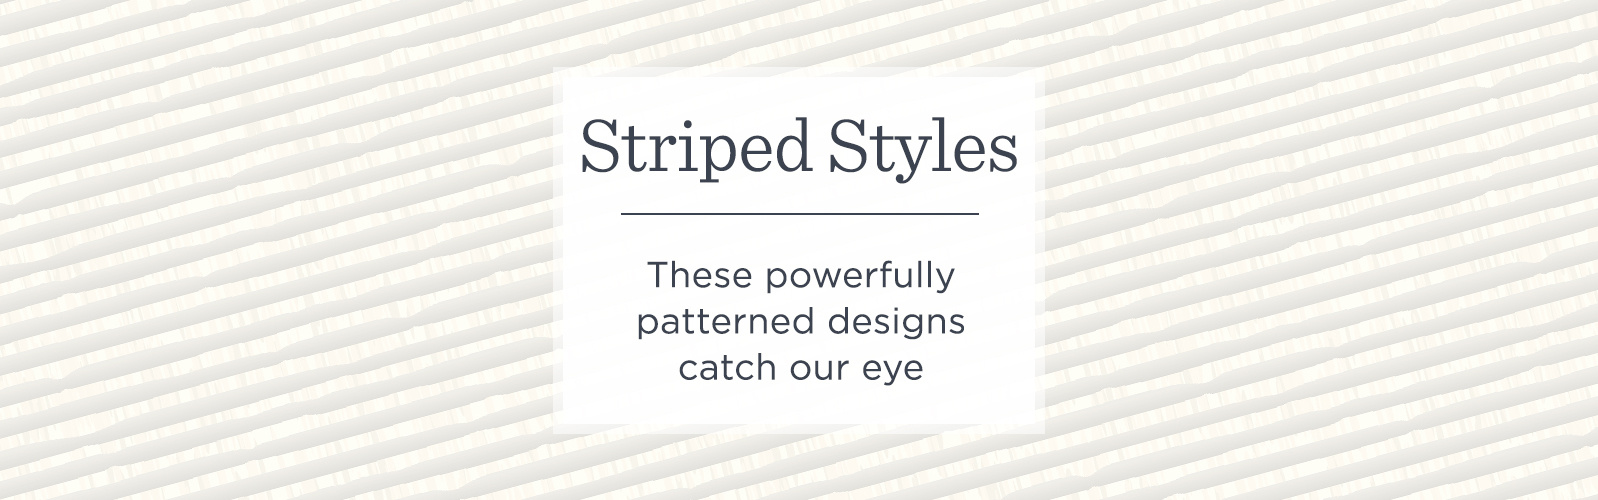 Striped Styles. These powerfully patterned designs catch our eye